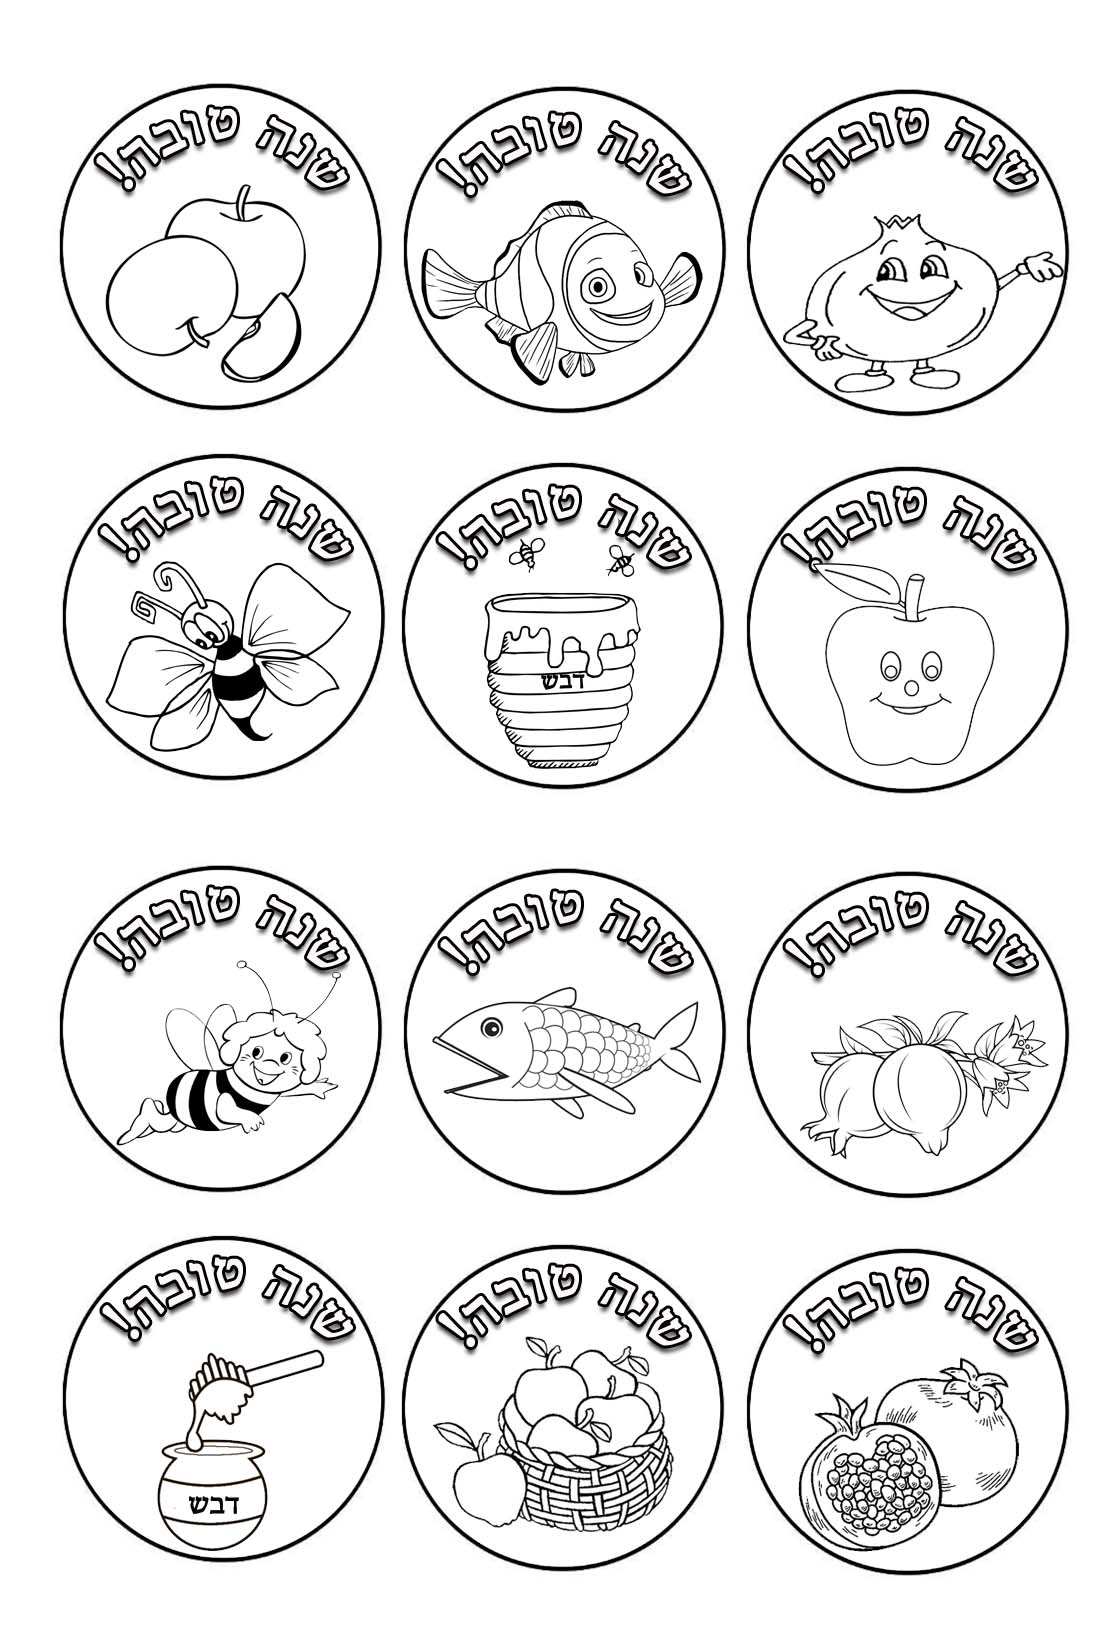 Rosh Hashana Coloring Pages